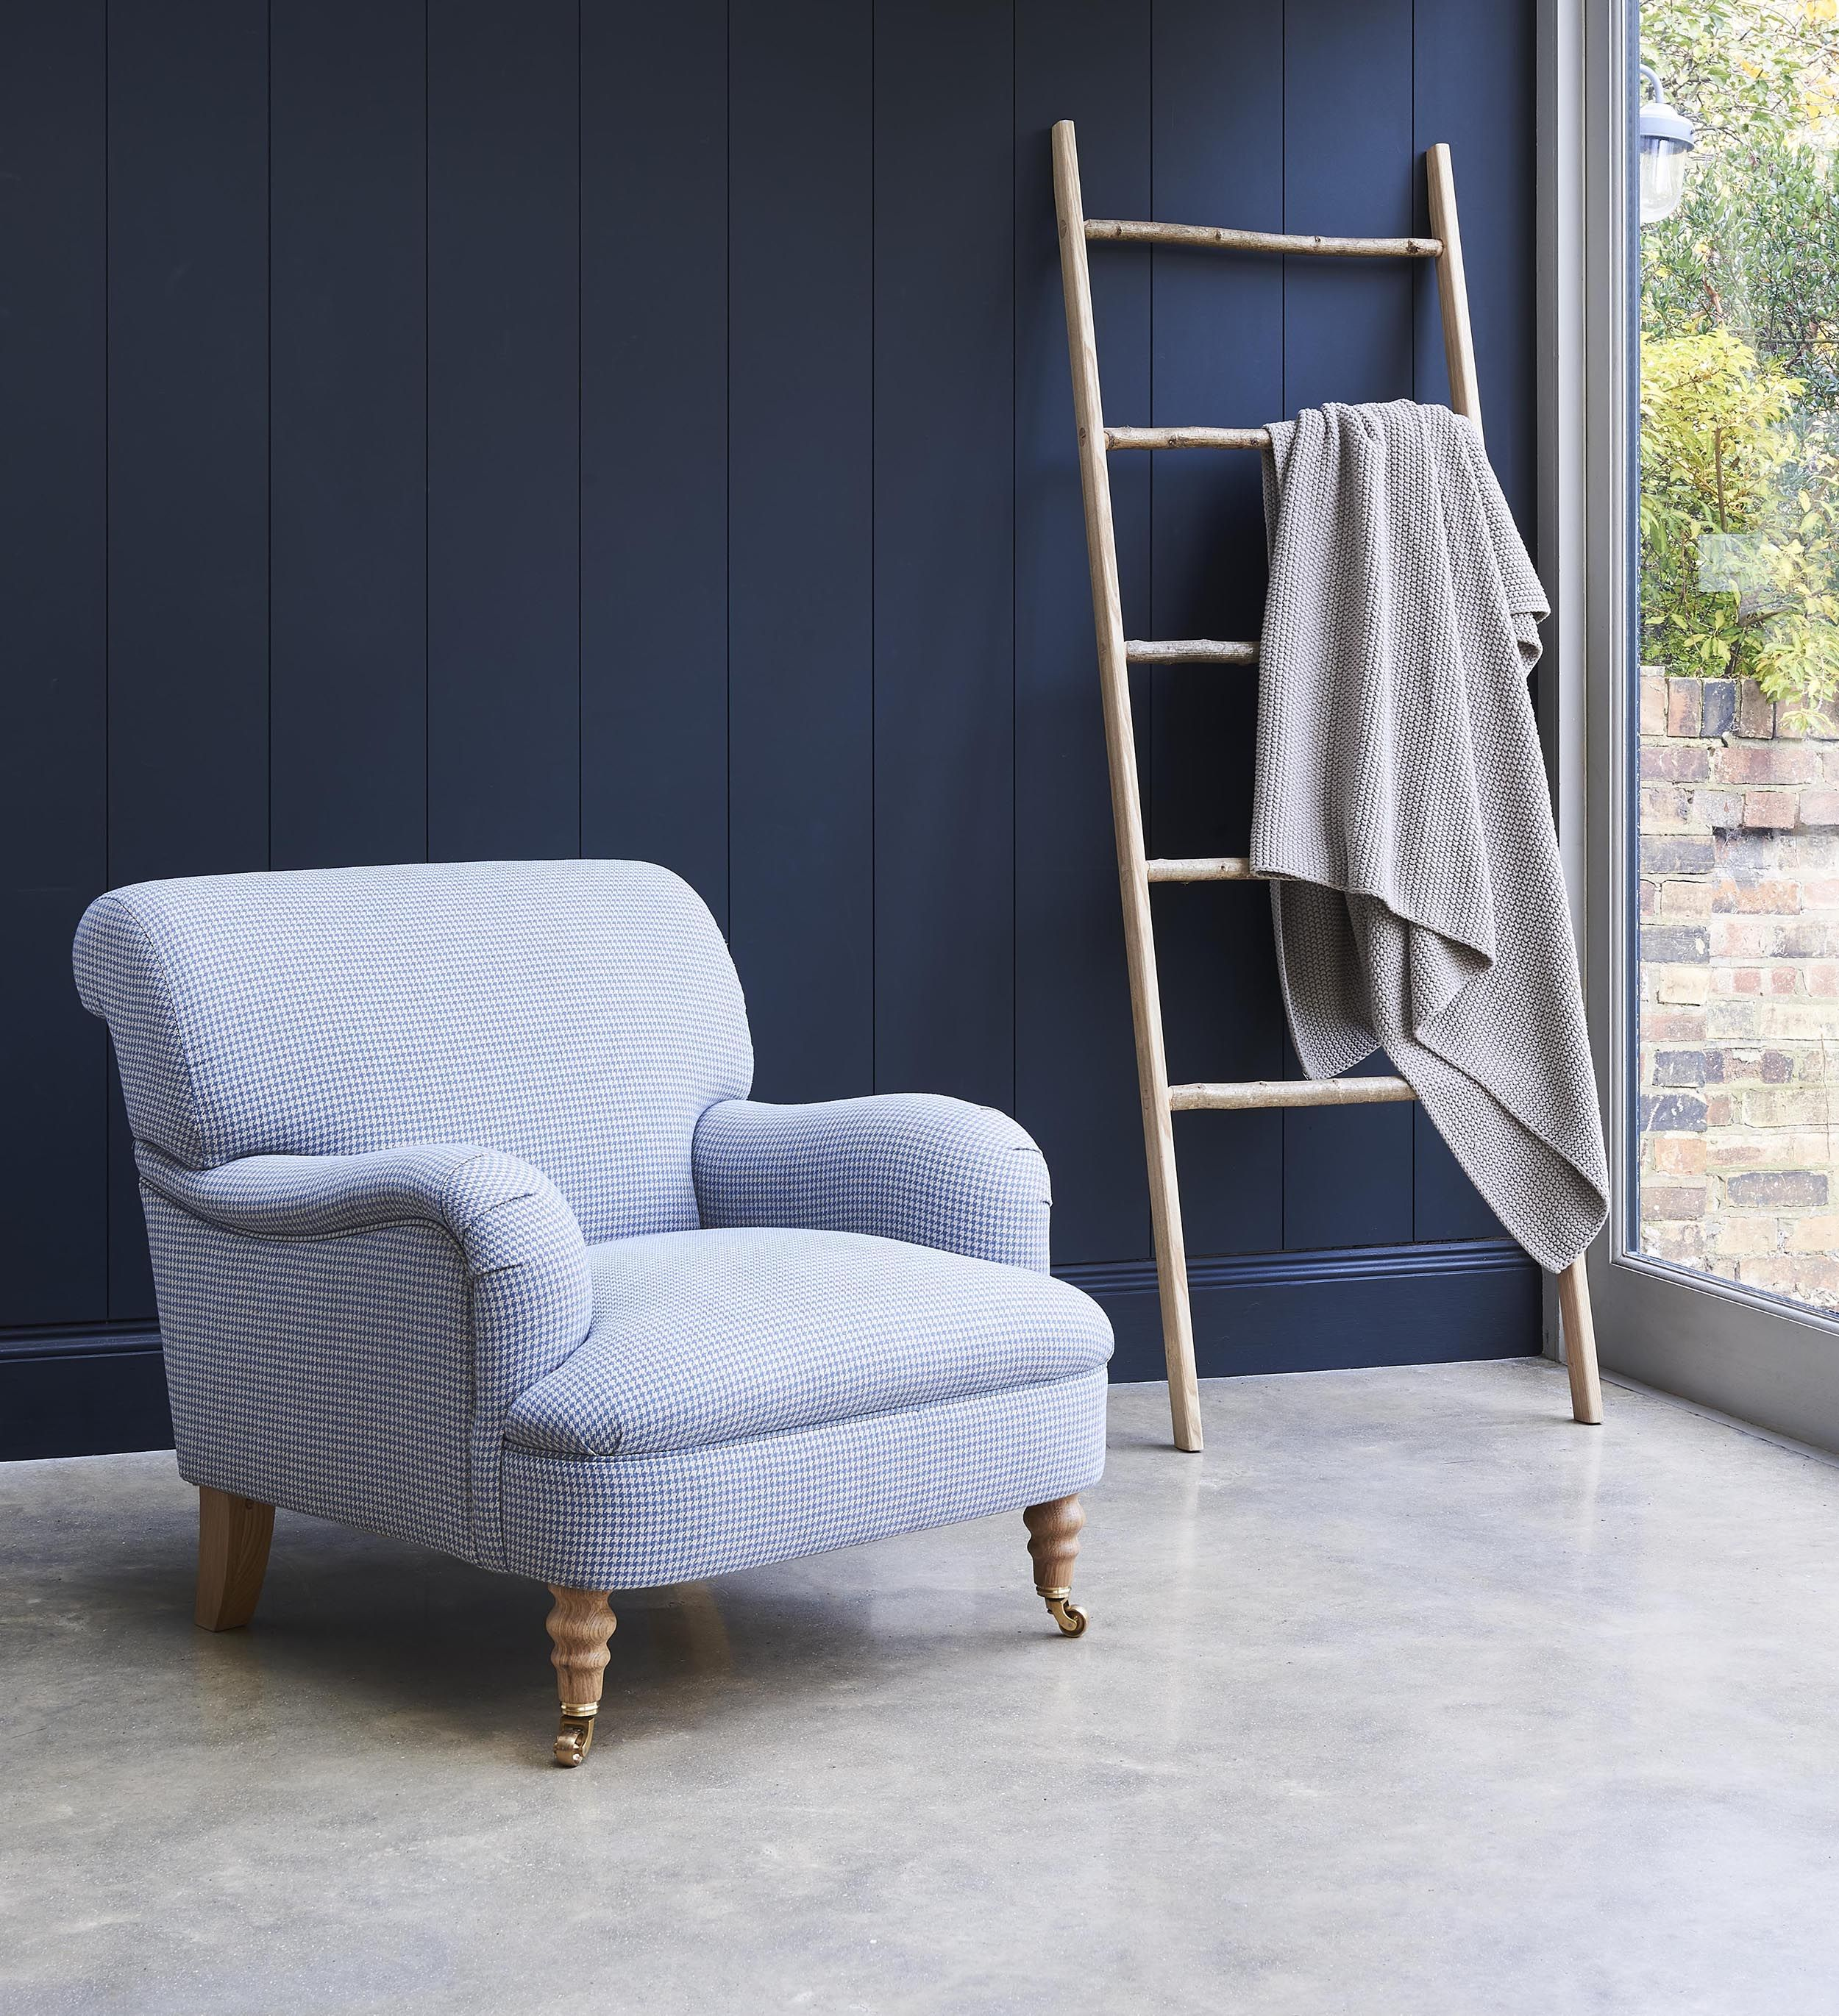 Sofas And Stuff Haresfield A Bespoke Hand Crafted Chair Is The Perfect Addition To Your Home